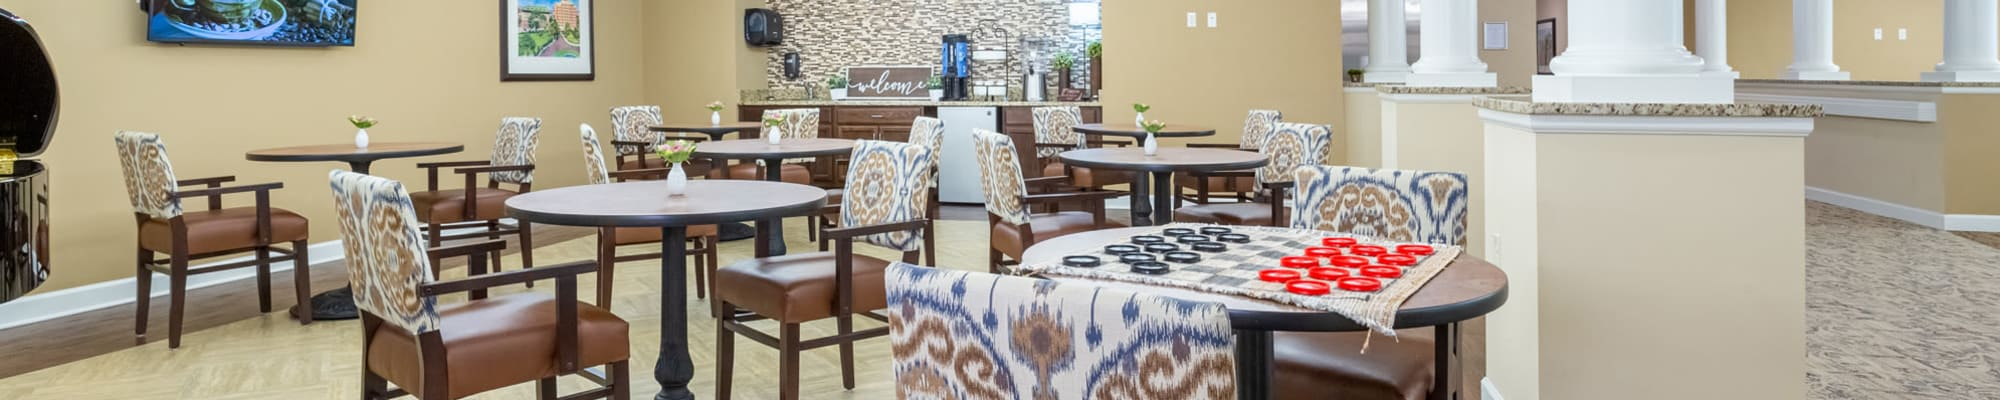 Our Community at The Harmony Collection at Roanoke - Assisted Living in Roanoke, Virginia